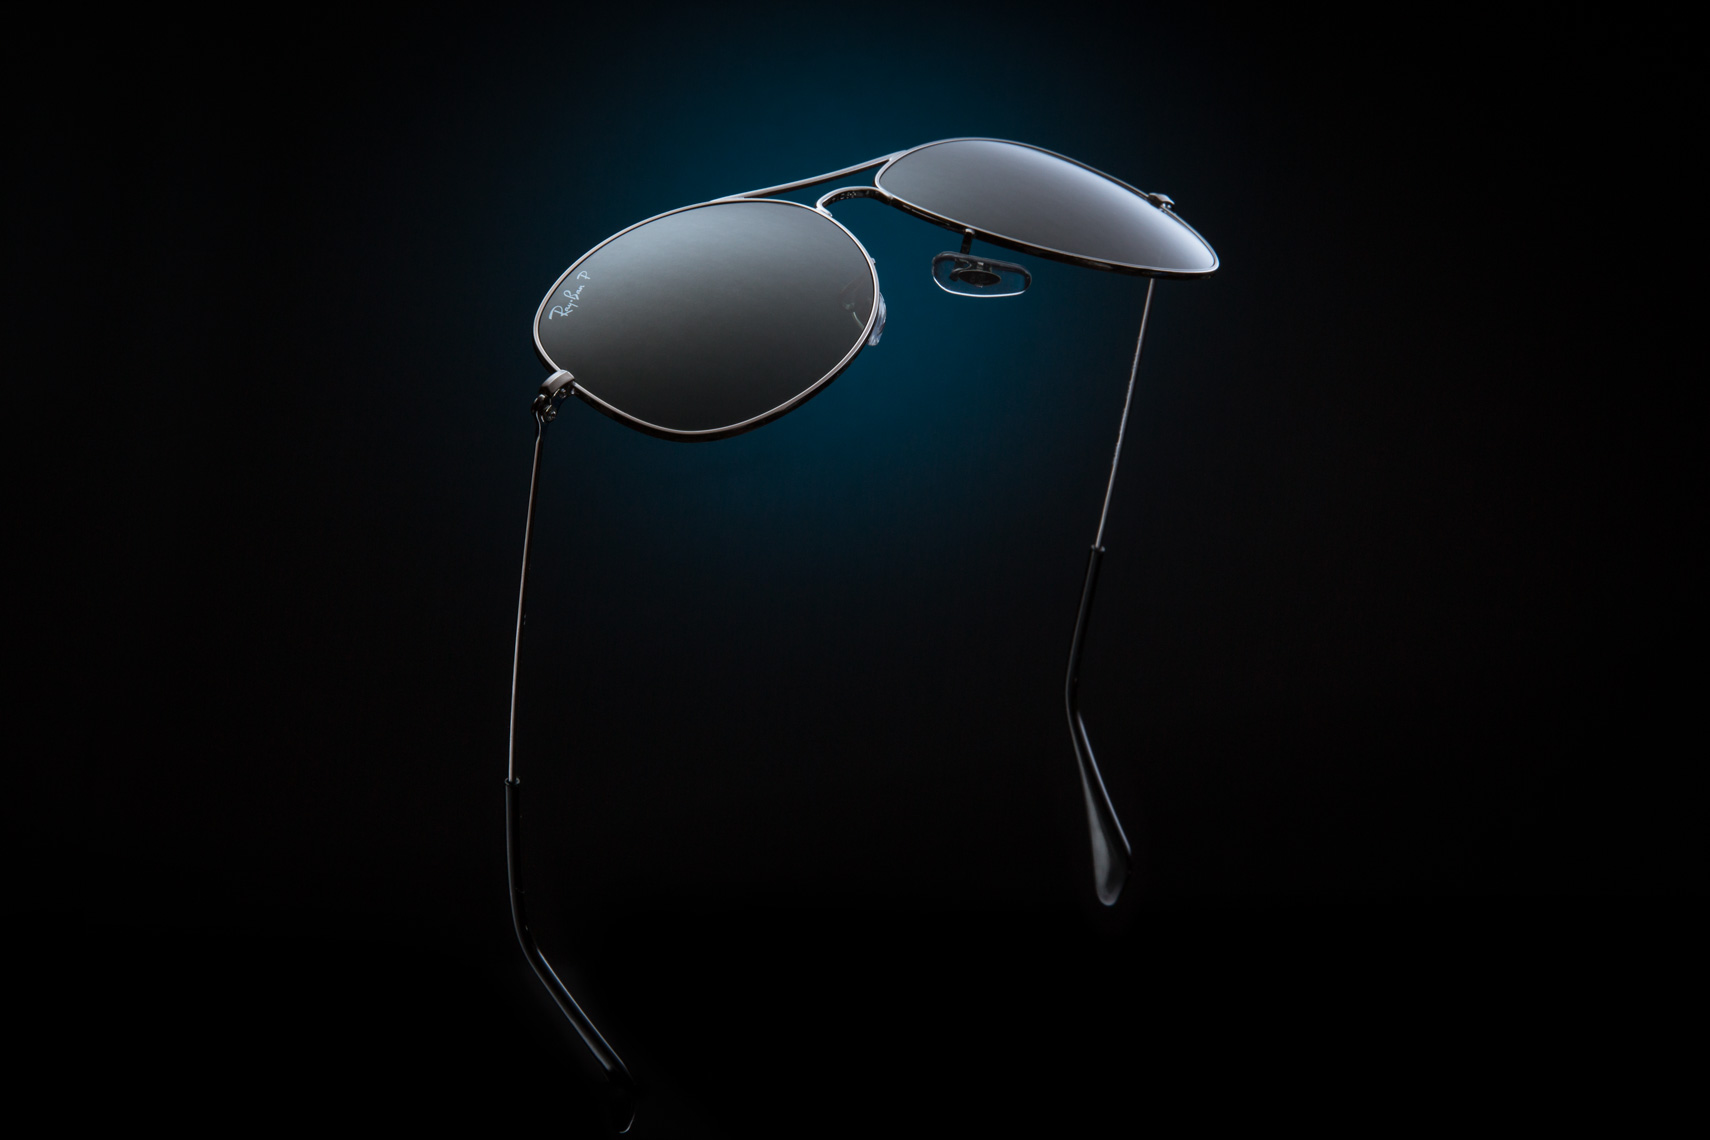 Rayban-Aviator-San-Francisco-Oakland-Product-Photographer-4709